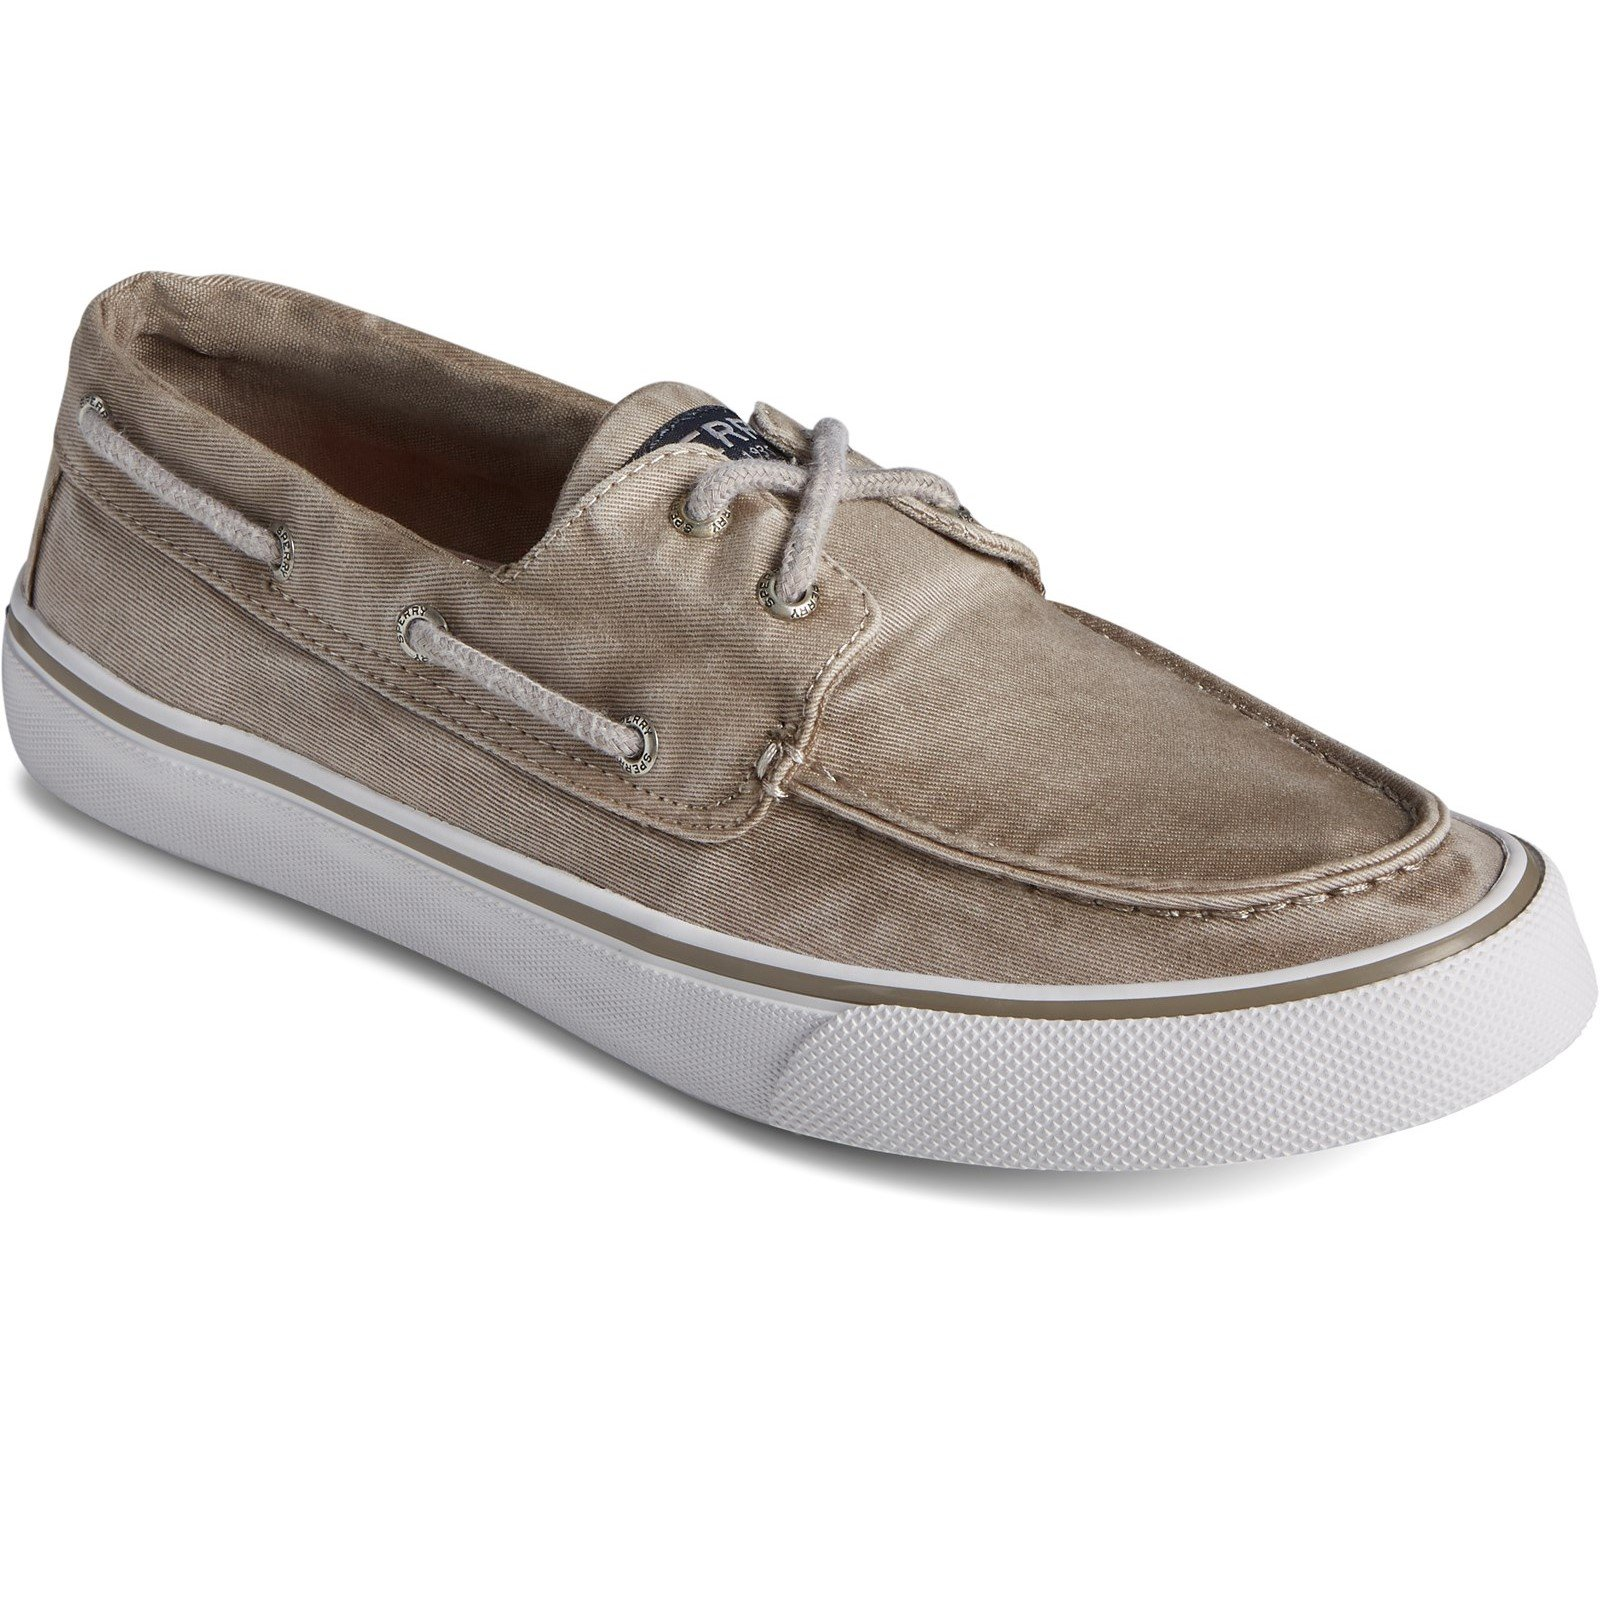 Sperry Men's Bahama II Boat Shoe Various Colours 32923 - Taupe 8